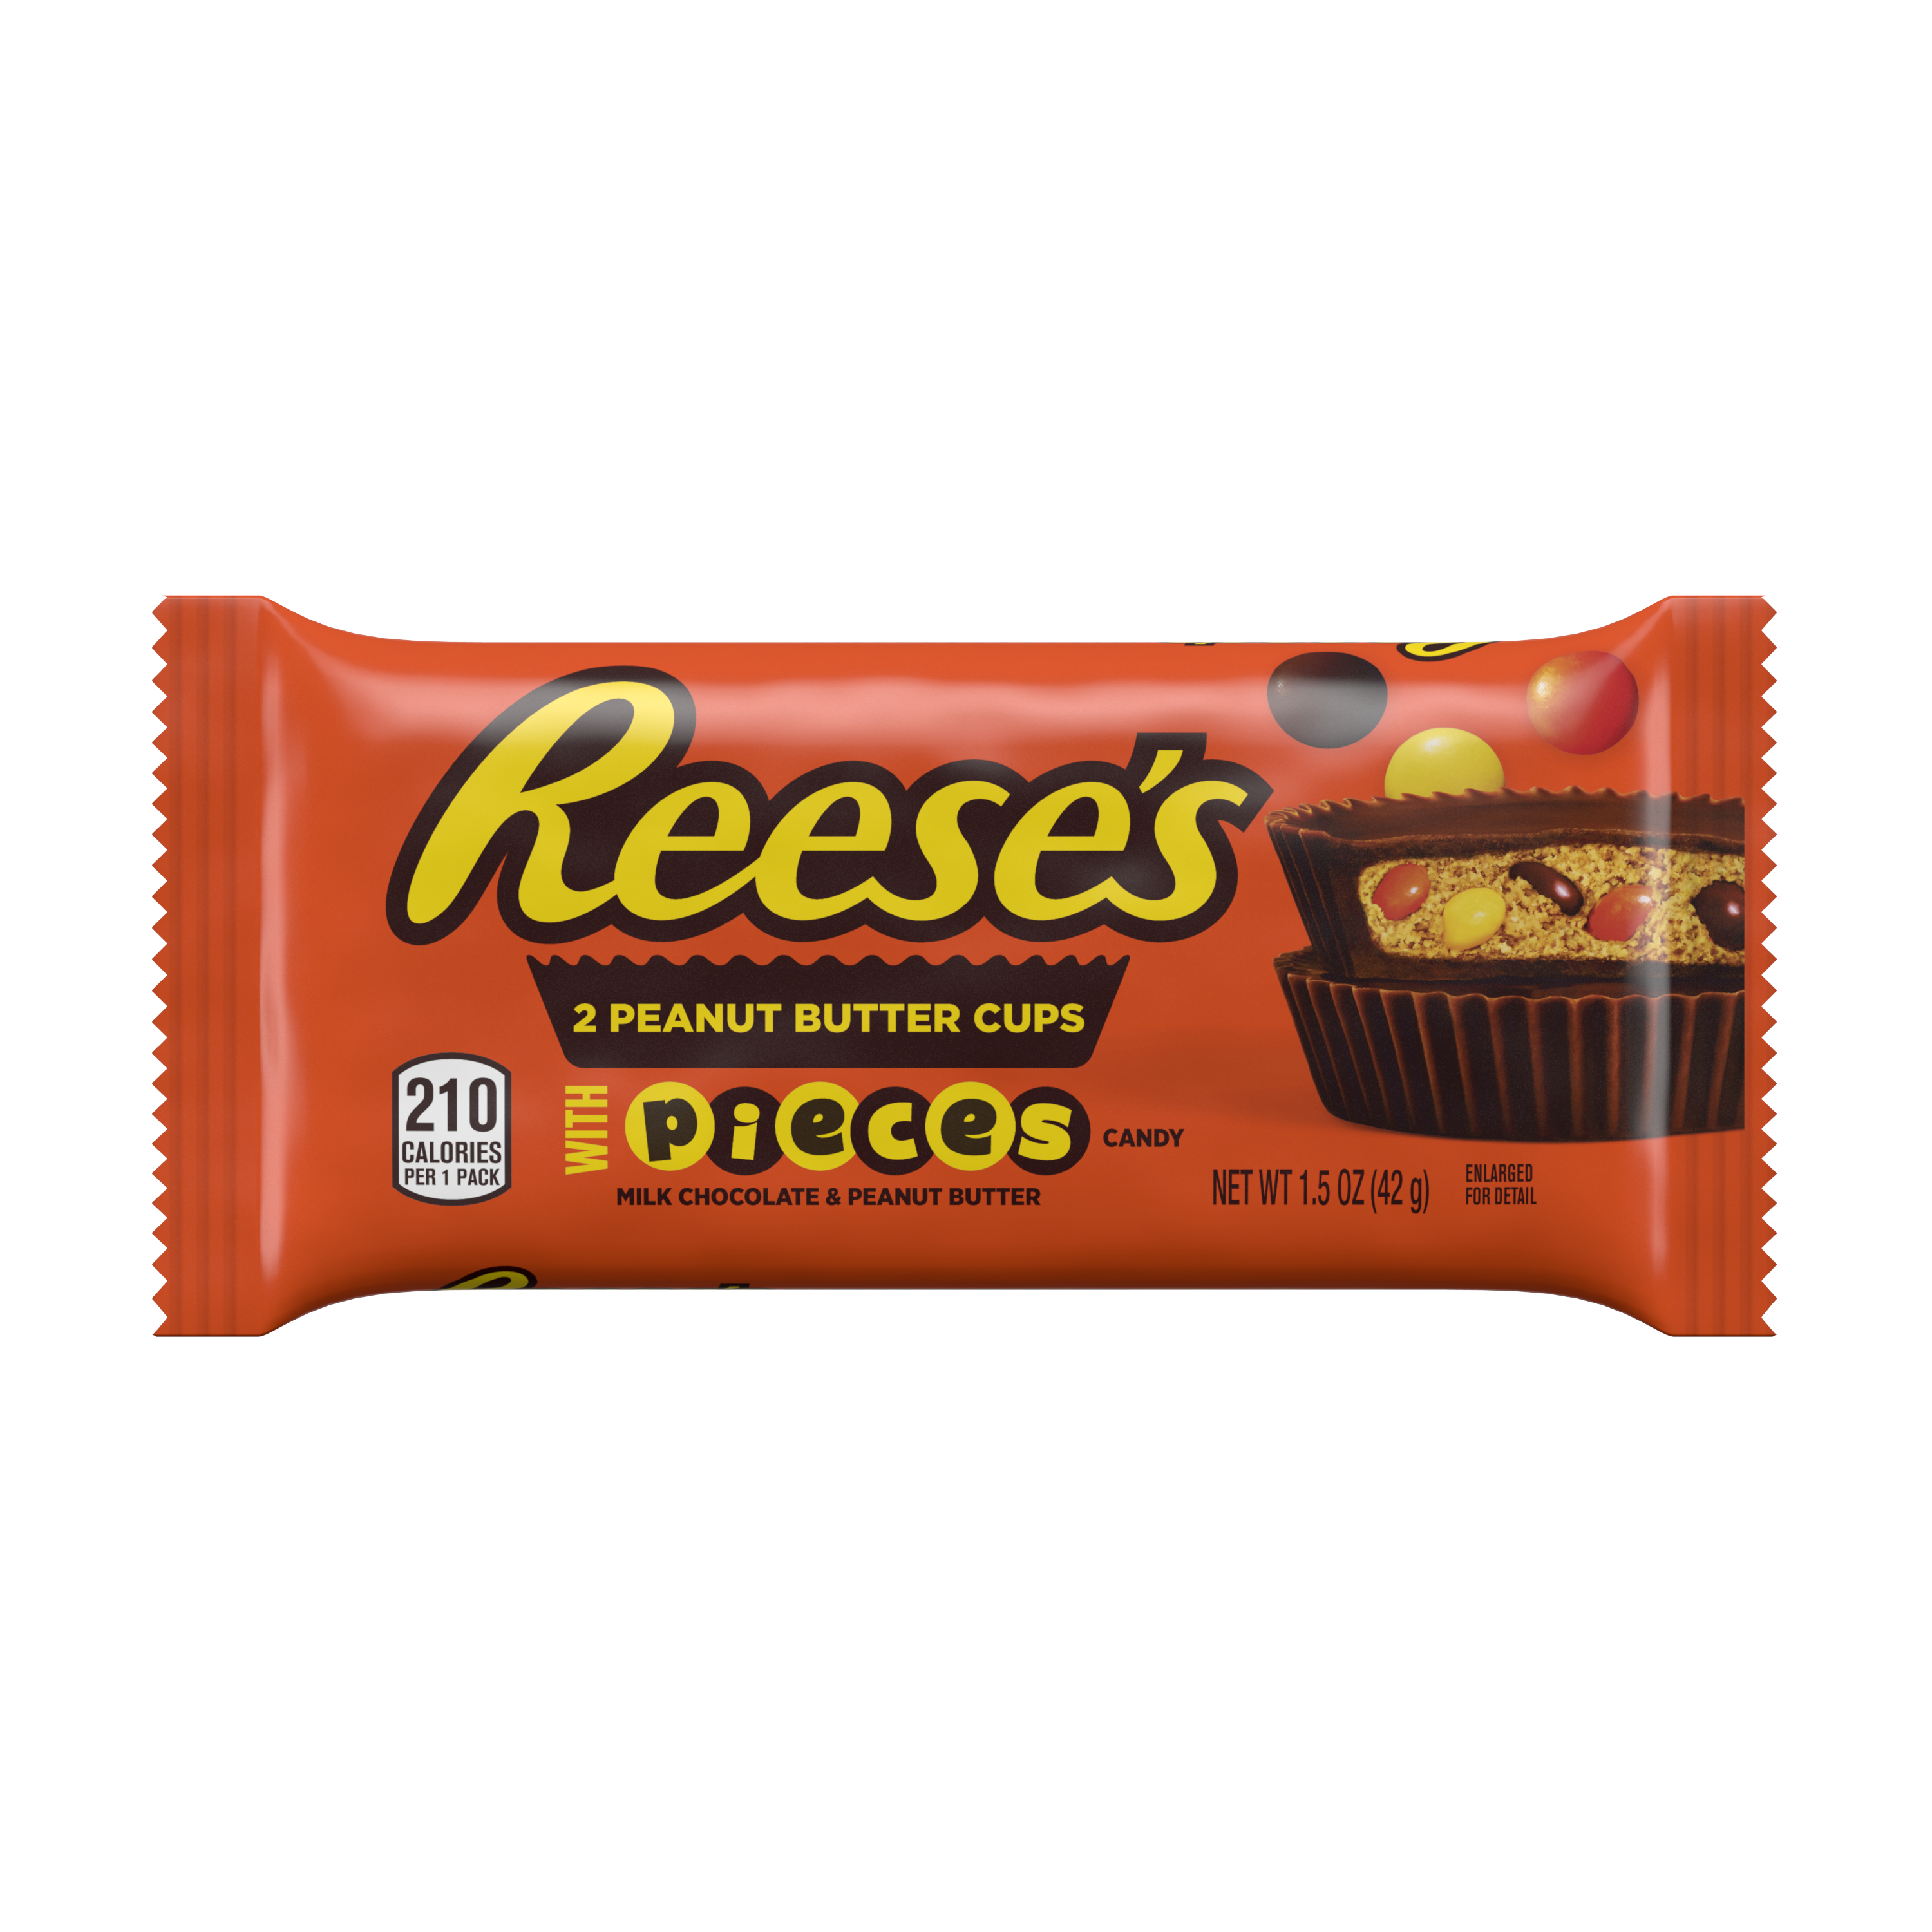 REESE'S STUFFED WITH PIECES Milk Chocolate Peanut Butter Cups, 1.5 oz - Front of Package